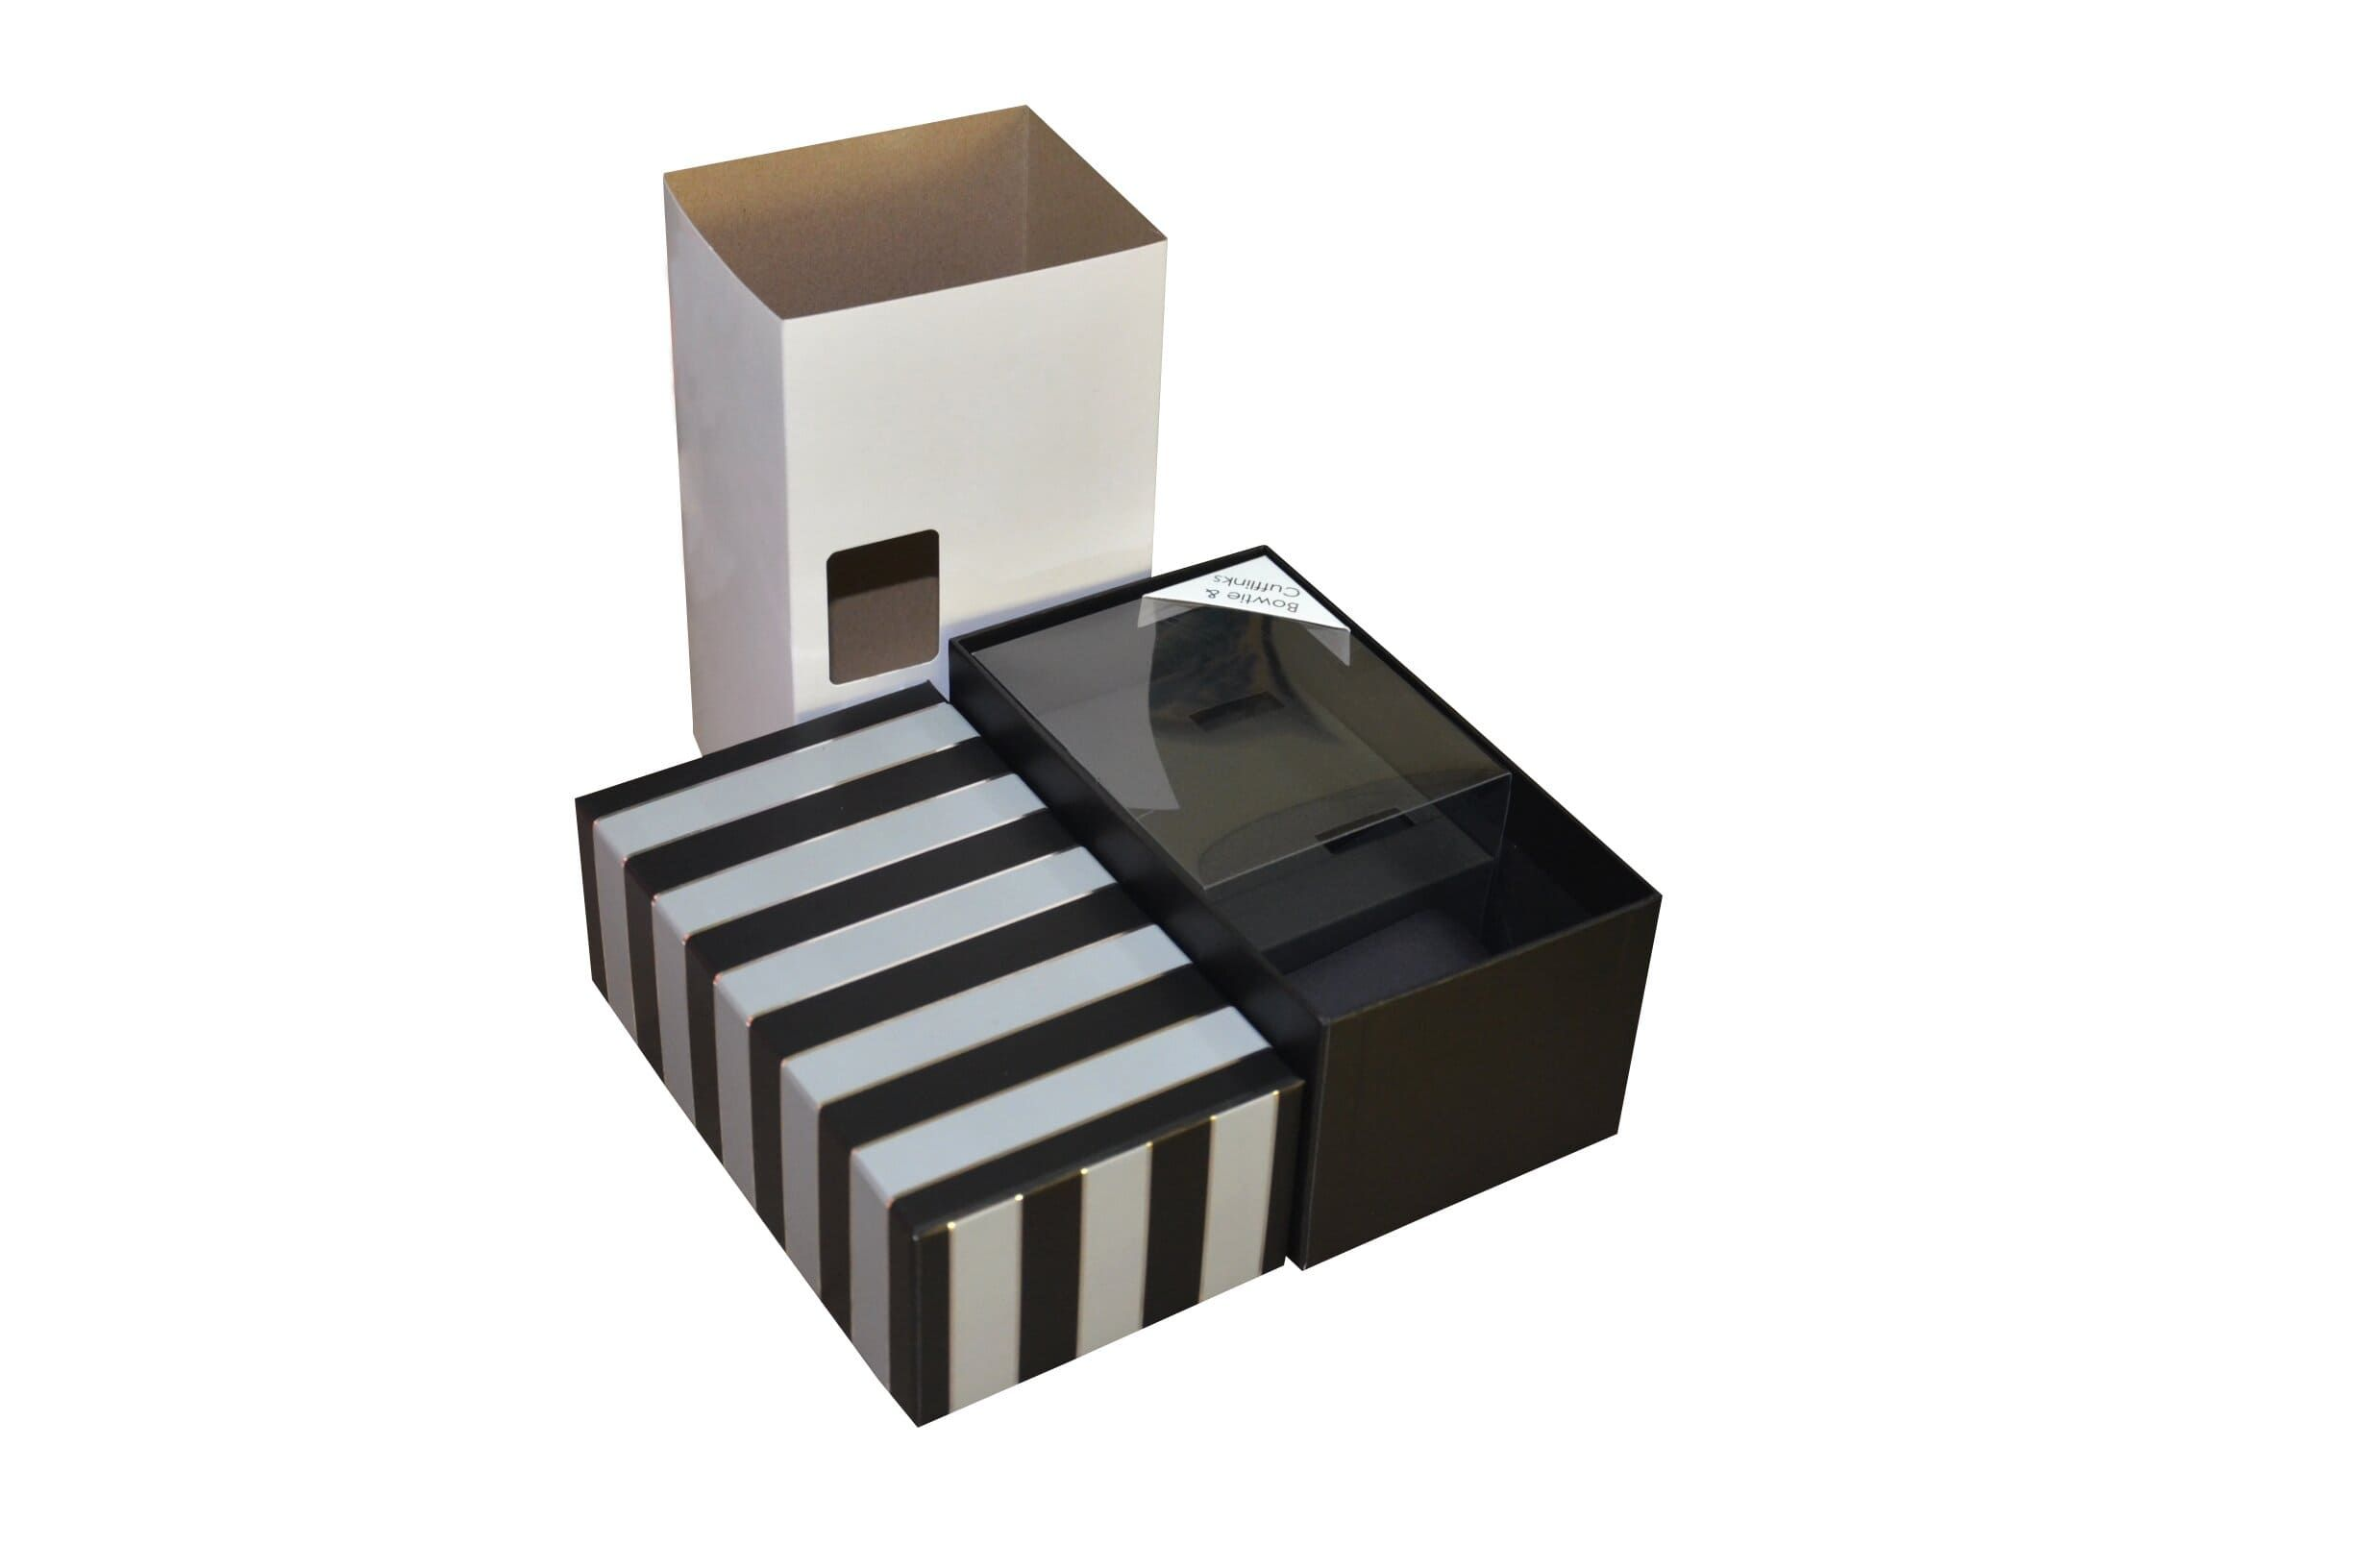 Collapsible Rigid Box for Packaging